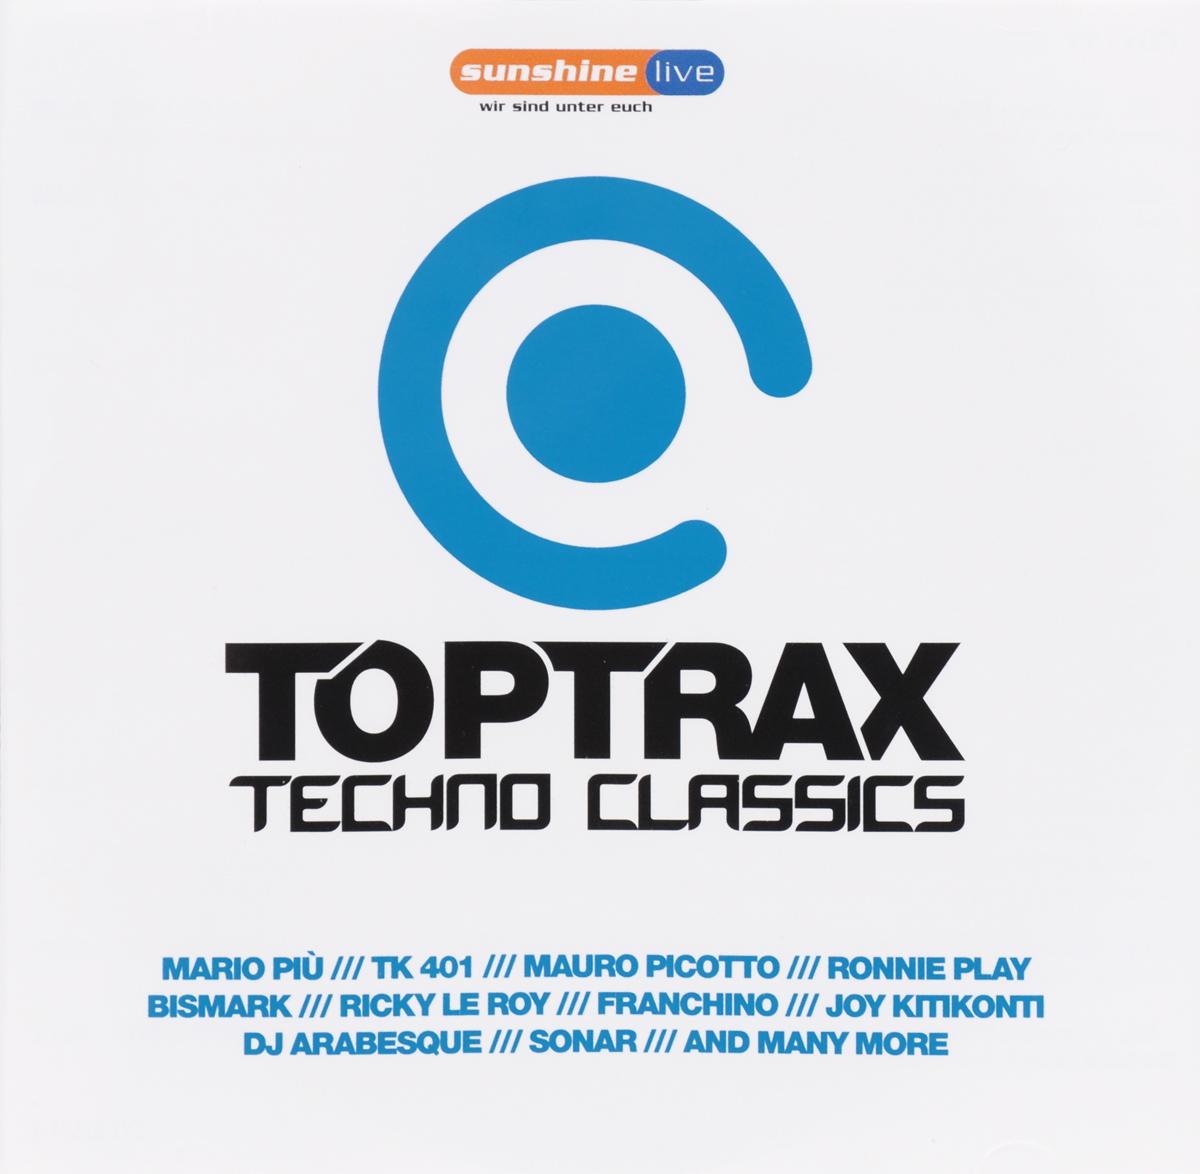 Megamind,Ricky Le Roy,TK 401,Джой Китиконти,Franchino,Fabio MC,DJ Arabesque,Мауро Пикотто,Ricky Effe,Ронни Плэй Toptrax Techno Classics (2 CD) юбки фedora юбка джой